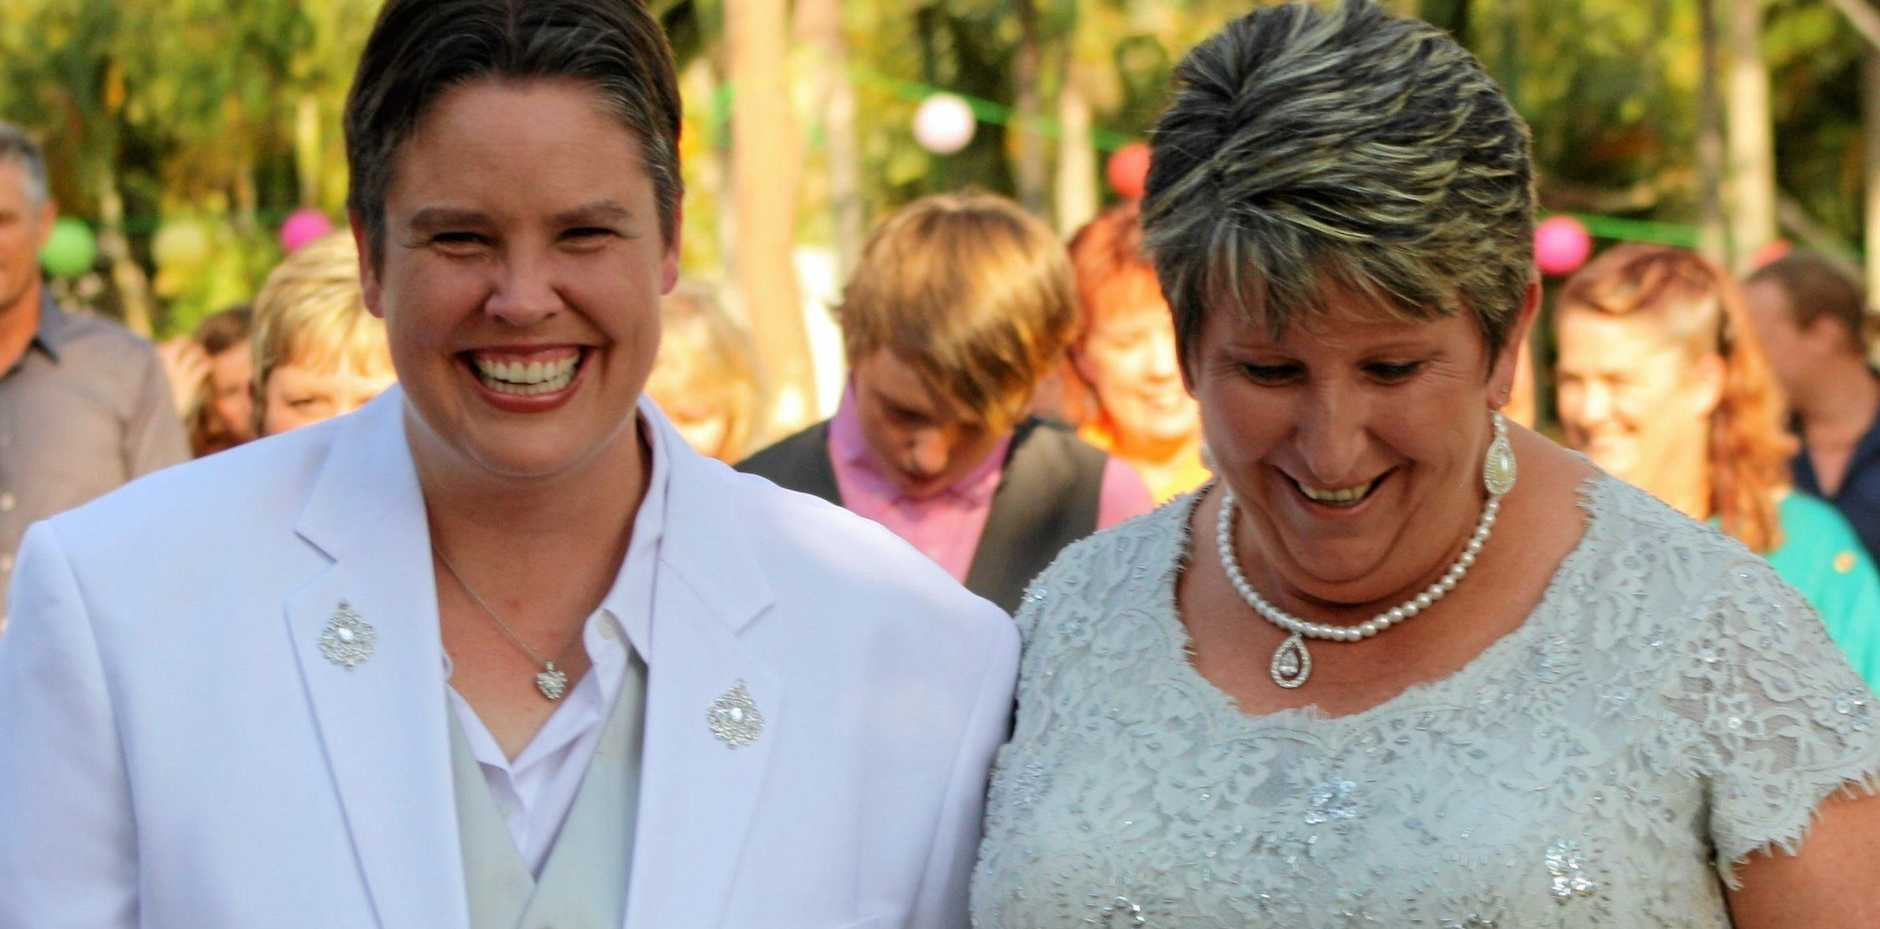 LOVE WINS: Gemma Mann and her partner Debbie Gilson celebrated their wedding in 2012 and wait for it to be legally recognised after a 'yes' outcome.